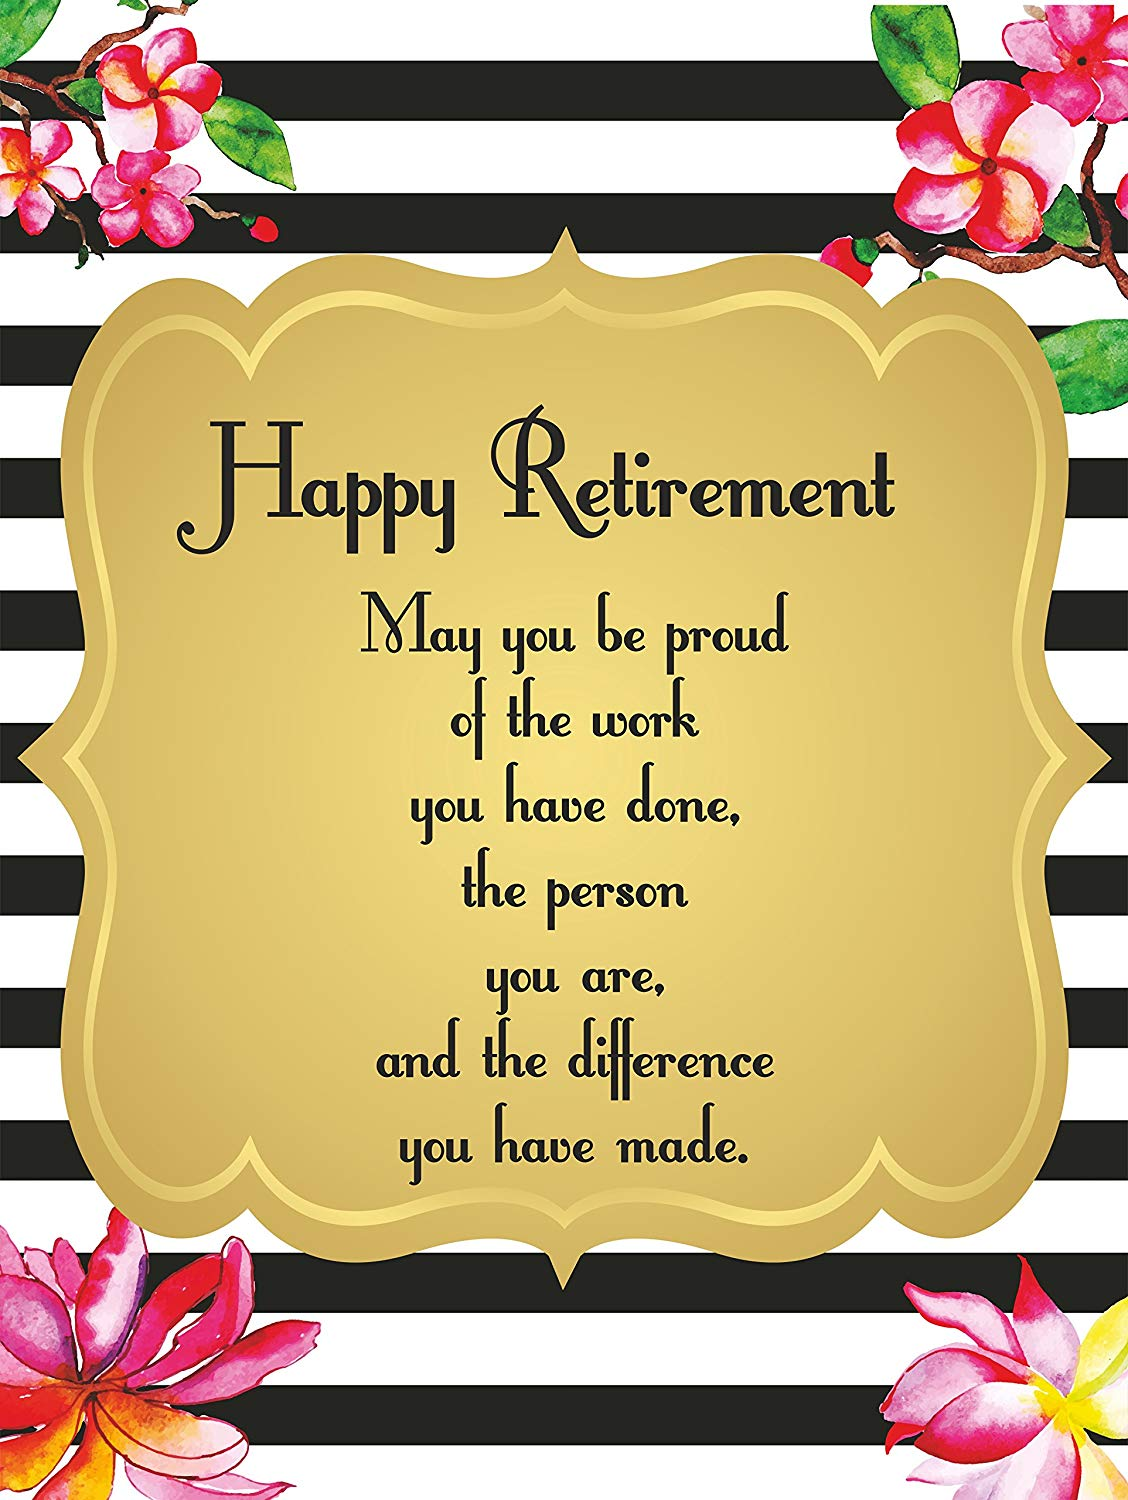 Happy Retirement Images And Quotes : happy, retirement, images, quotes, Retirement, Greeting, Cliparts,, Download, Clipart, Library